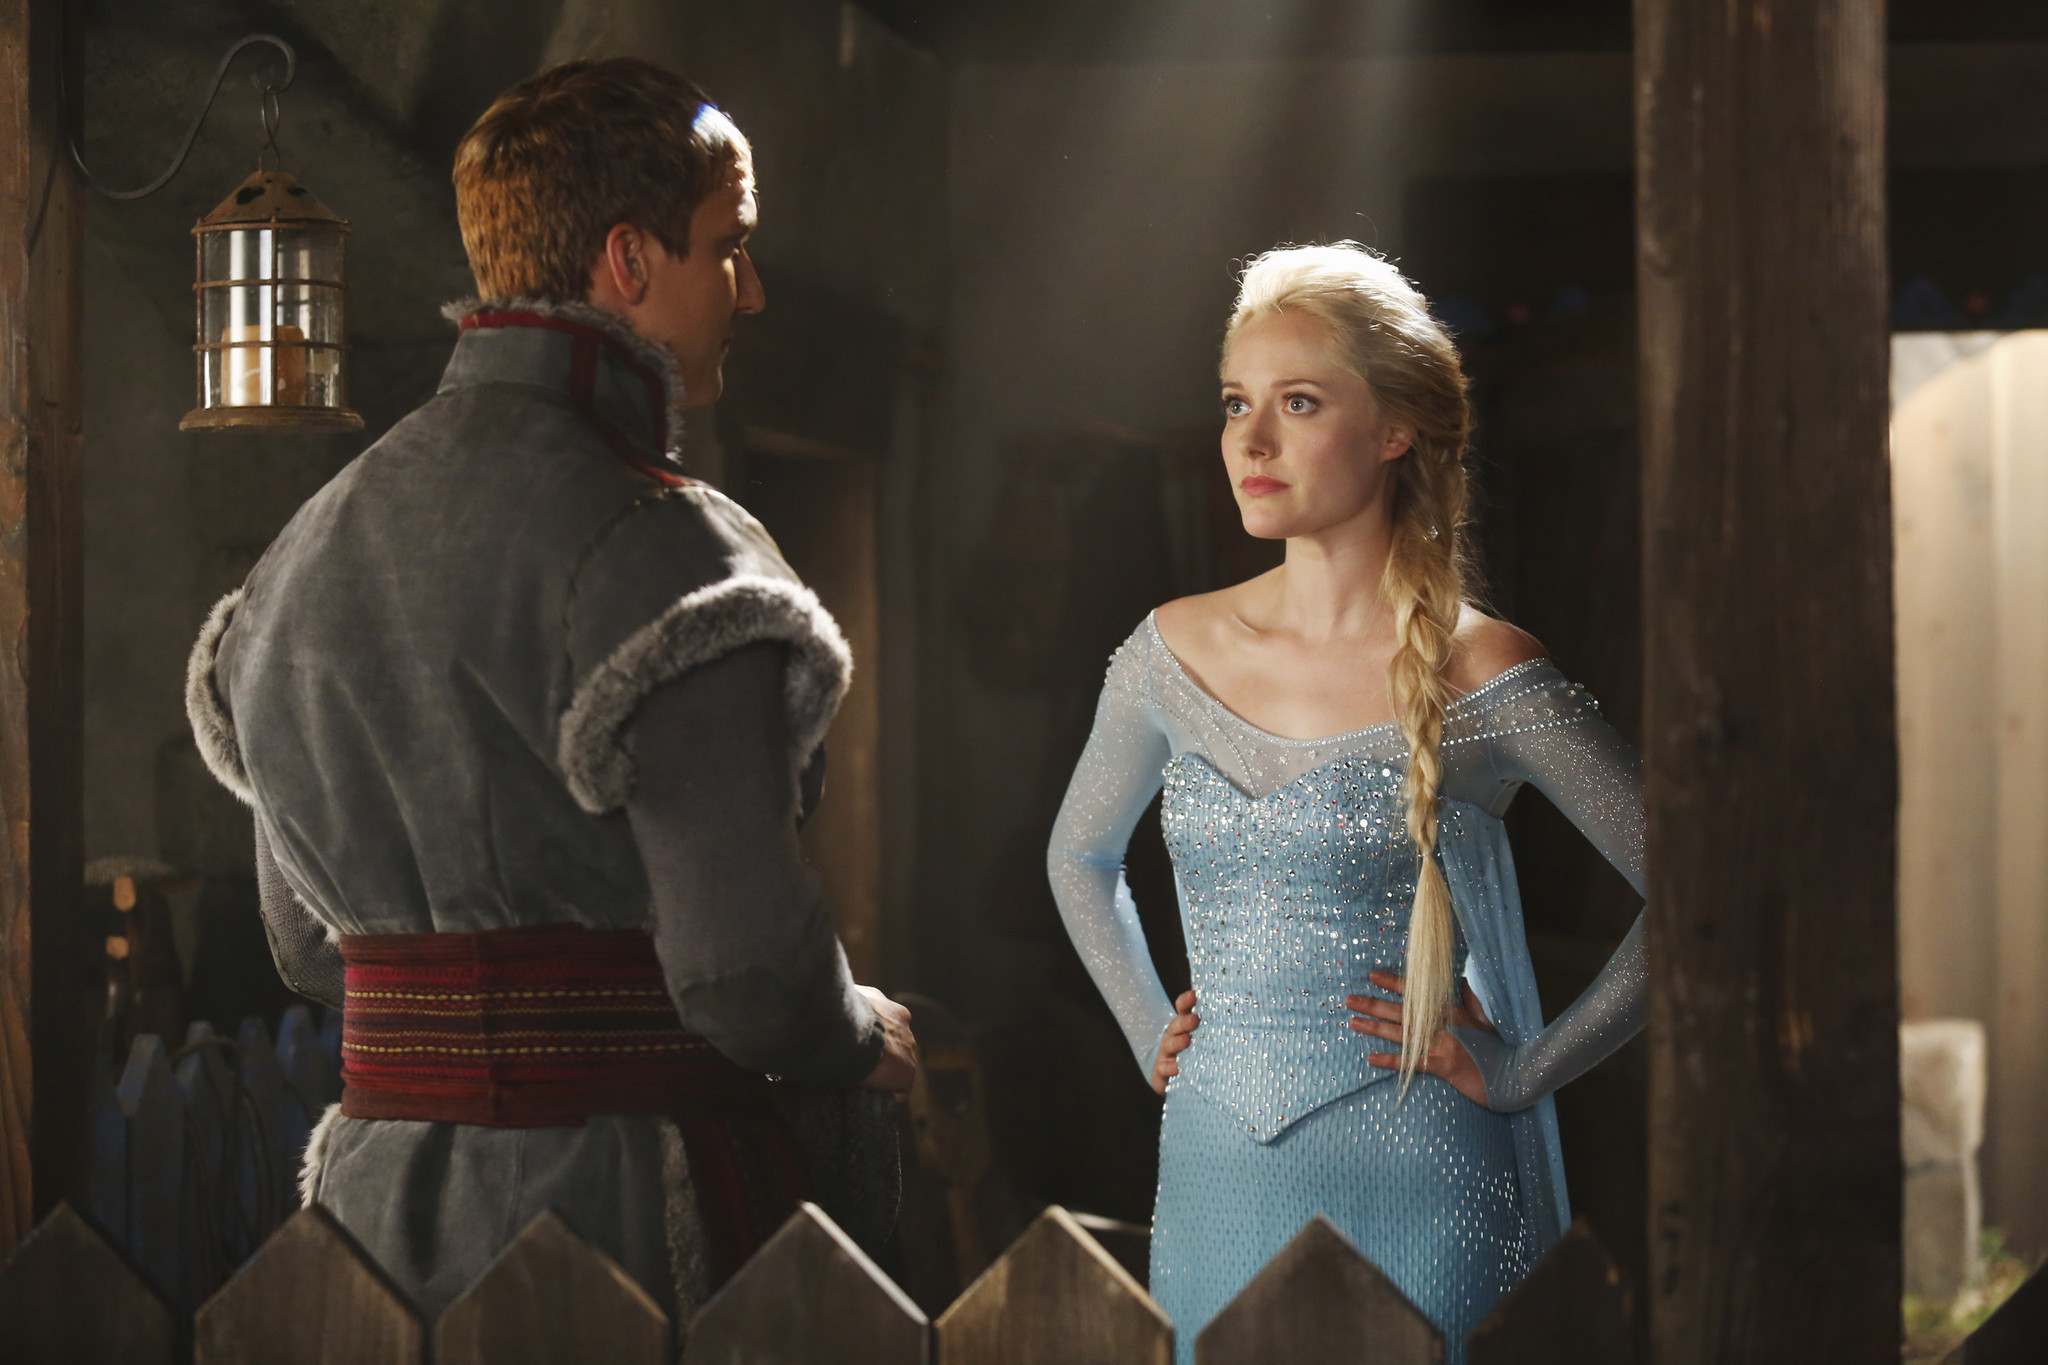 C'era una volta: Scott Michael Foster con Georgina Haig nell'episodio A Tale of Two Sisters